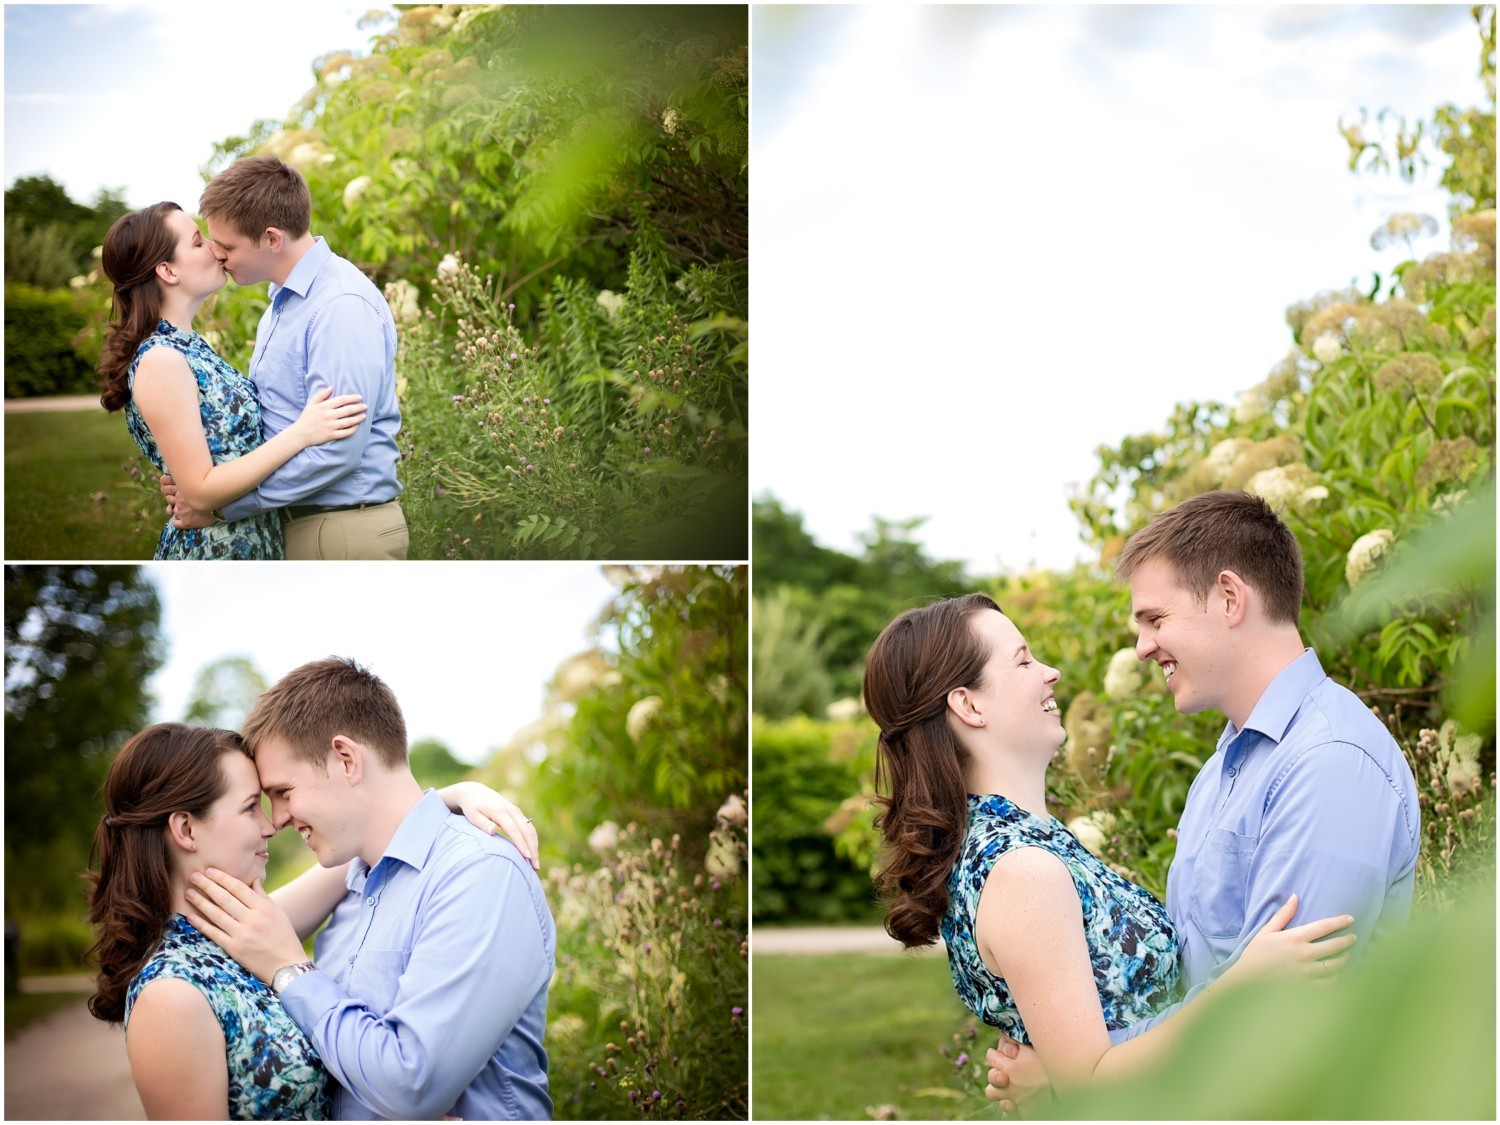 004 - Toronto - Ontario - Michelle & John- Colonel Samuel Smith Park Engagement_Fotor_Collage